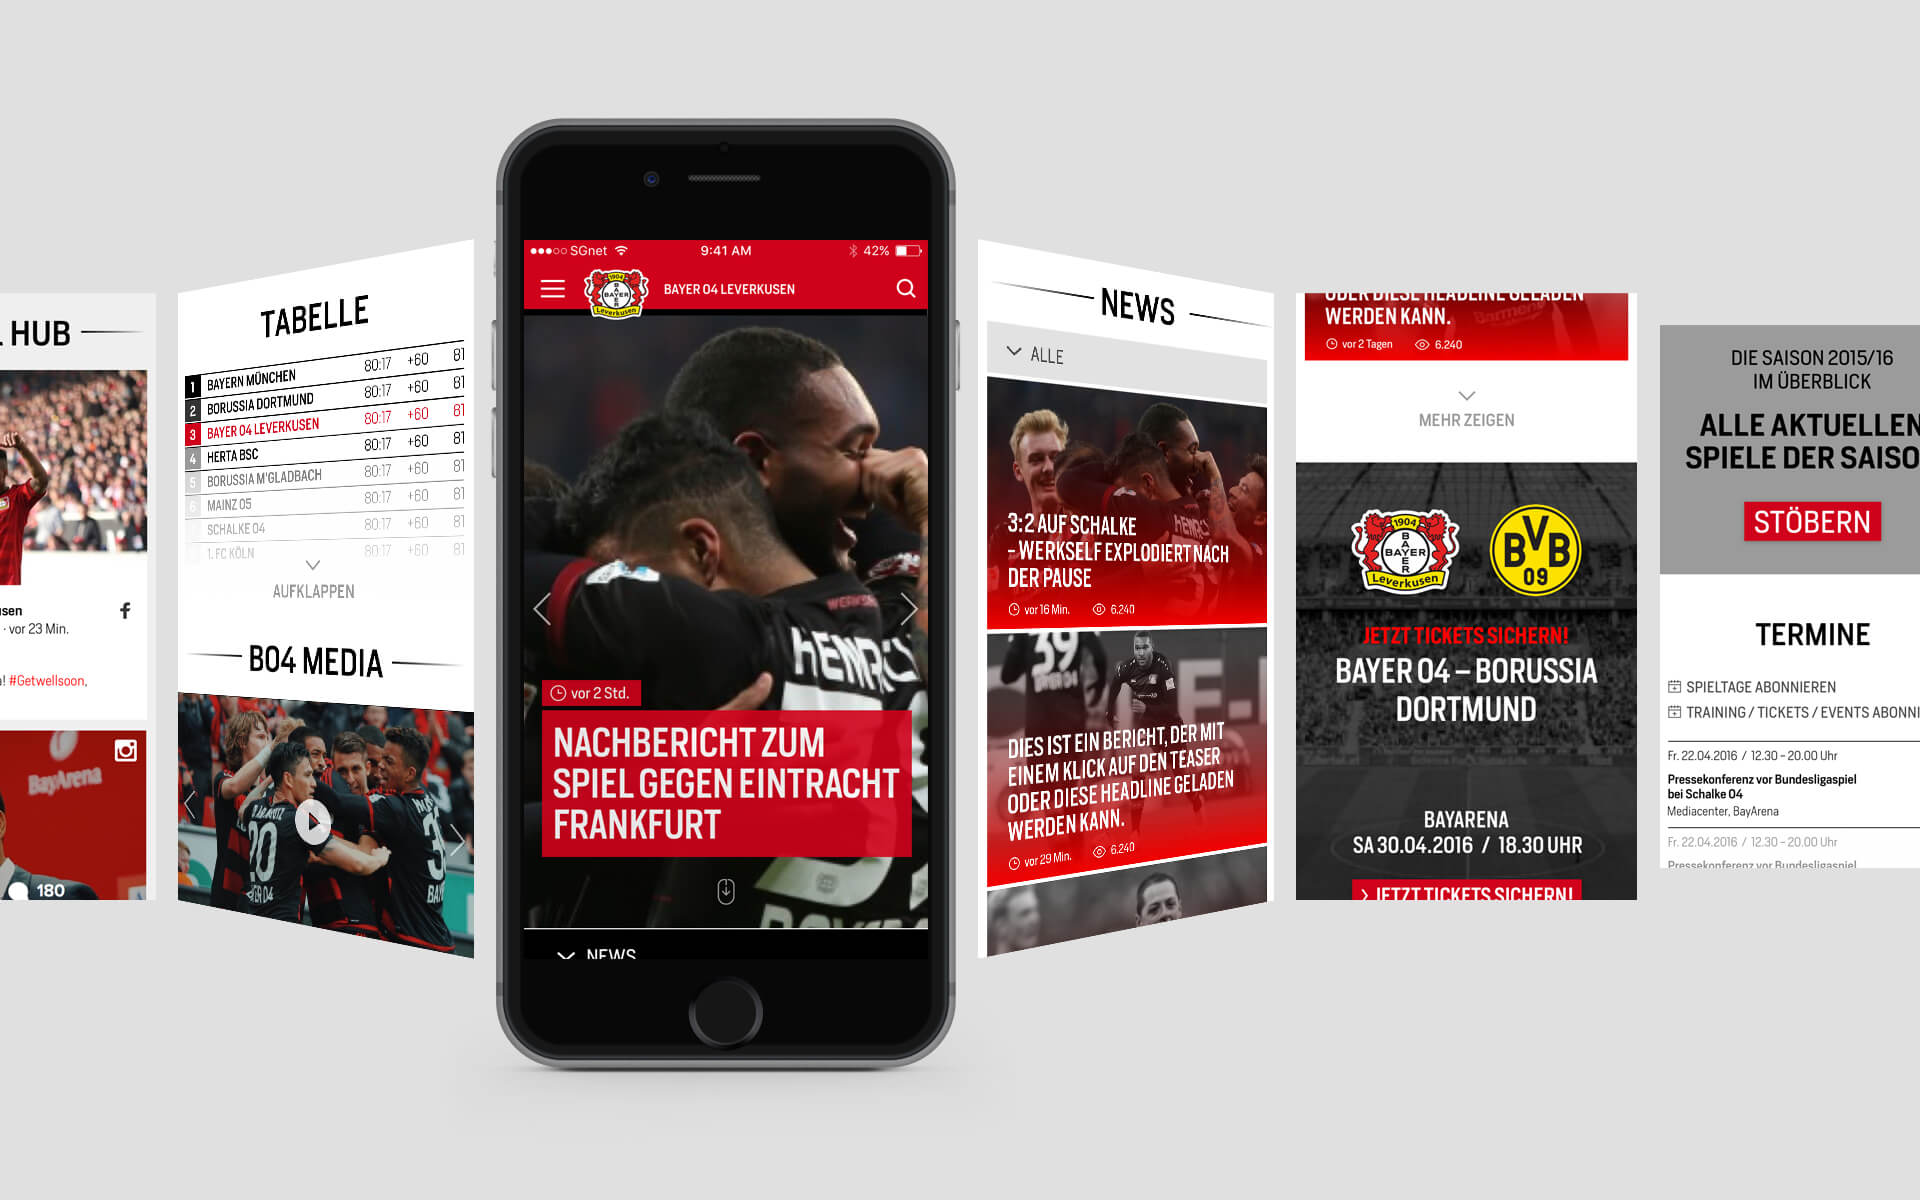 Bayer 04 Leverkusen Website Relaunch, Redesign, Webdesign, UX, UI, App, mobile device